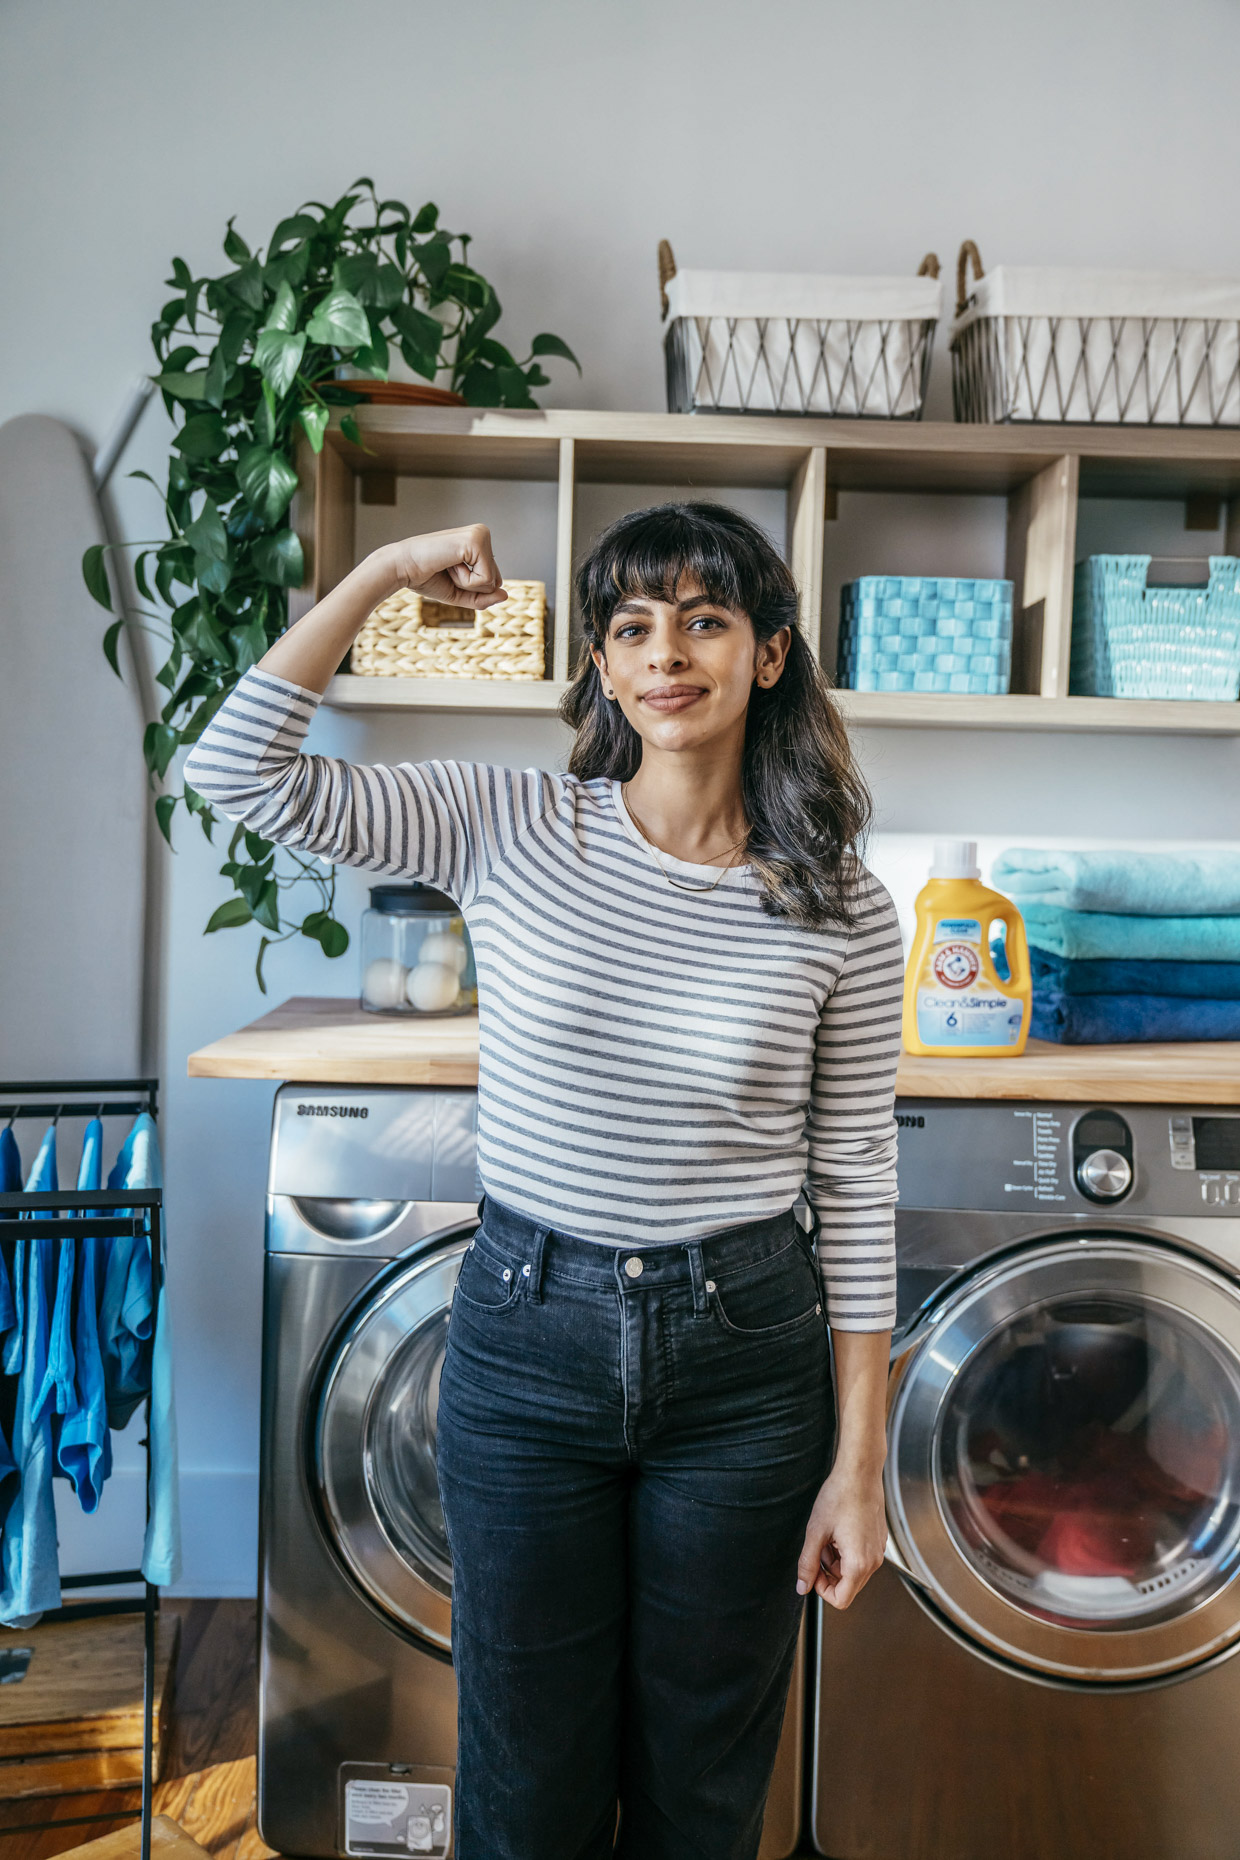 Confident woman with arm raised for Arm and Hammer Laundry detergent